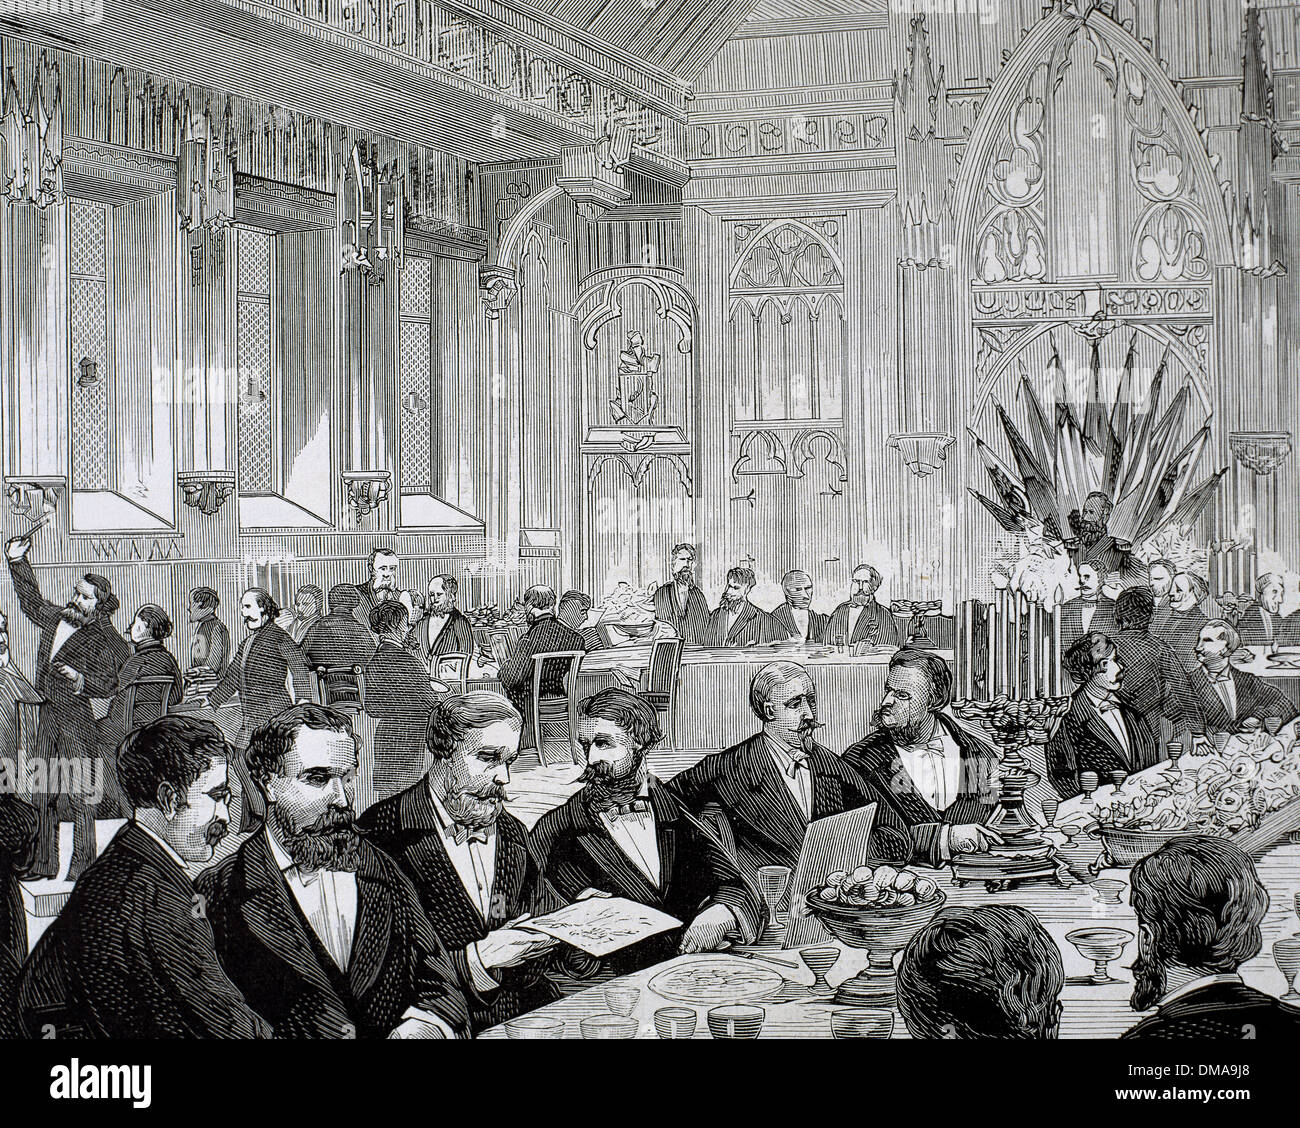 Belgium. Brussels. Banquet given in the Town Hall. National Committee of the National Exhibition. of various countries. - Stock Image